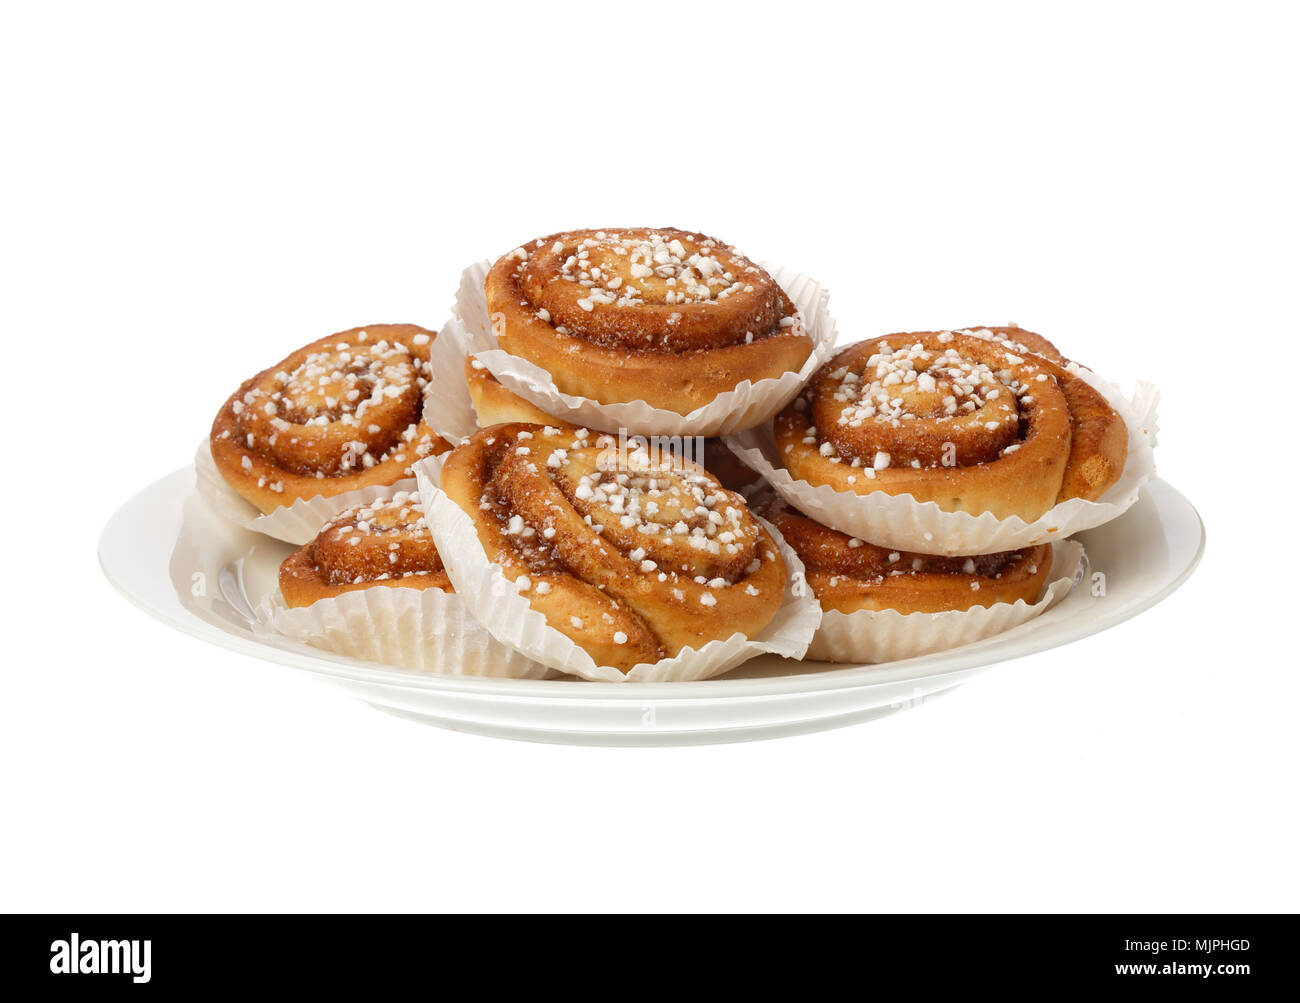 Cinnamon rolls in tins of grceaseproo fpaper isolated on white. - Stock Image